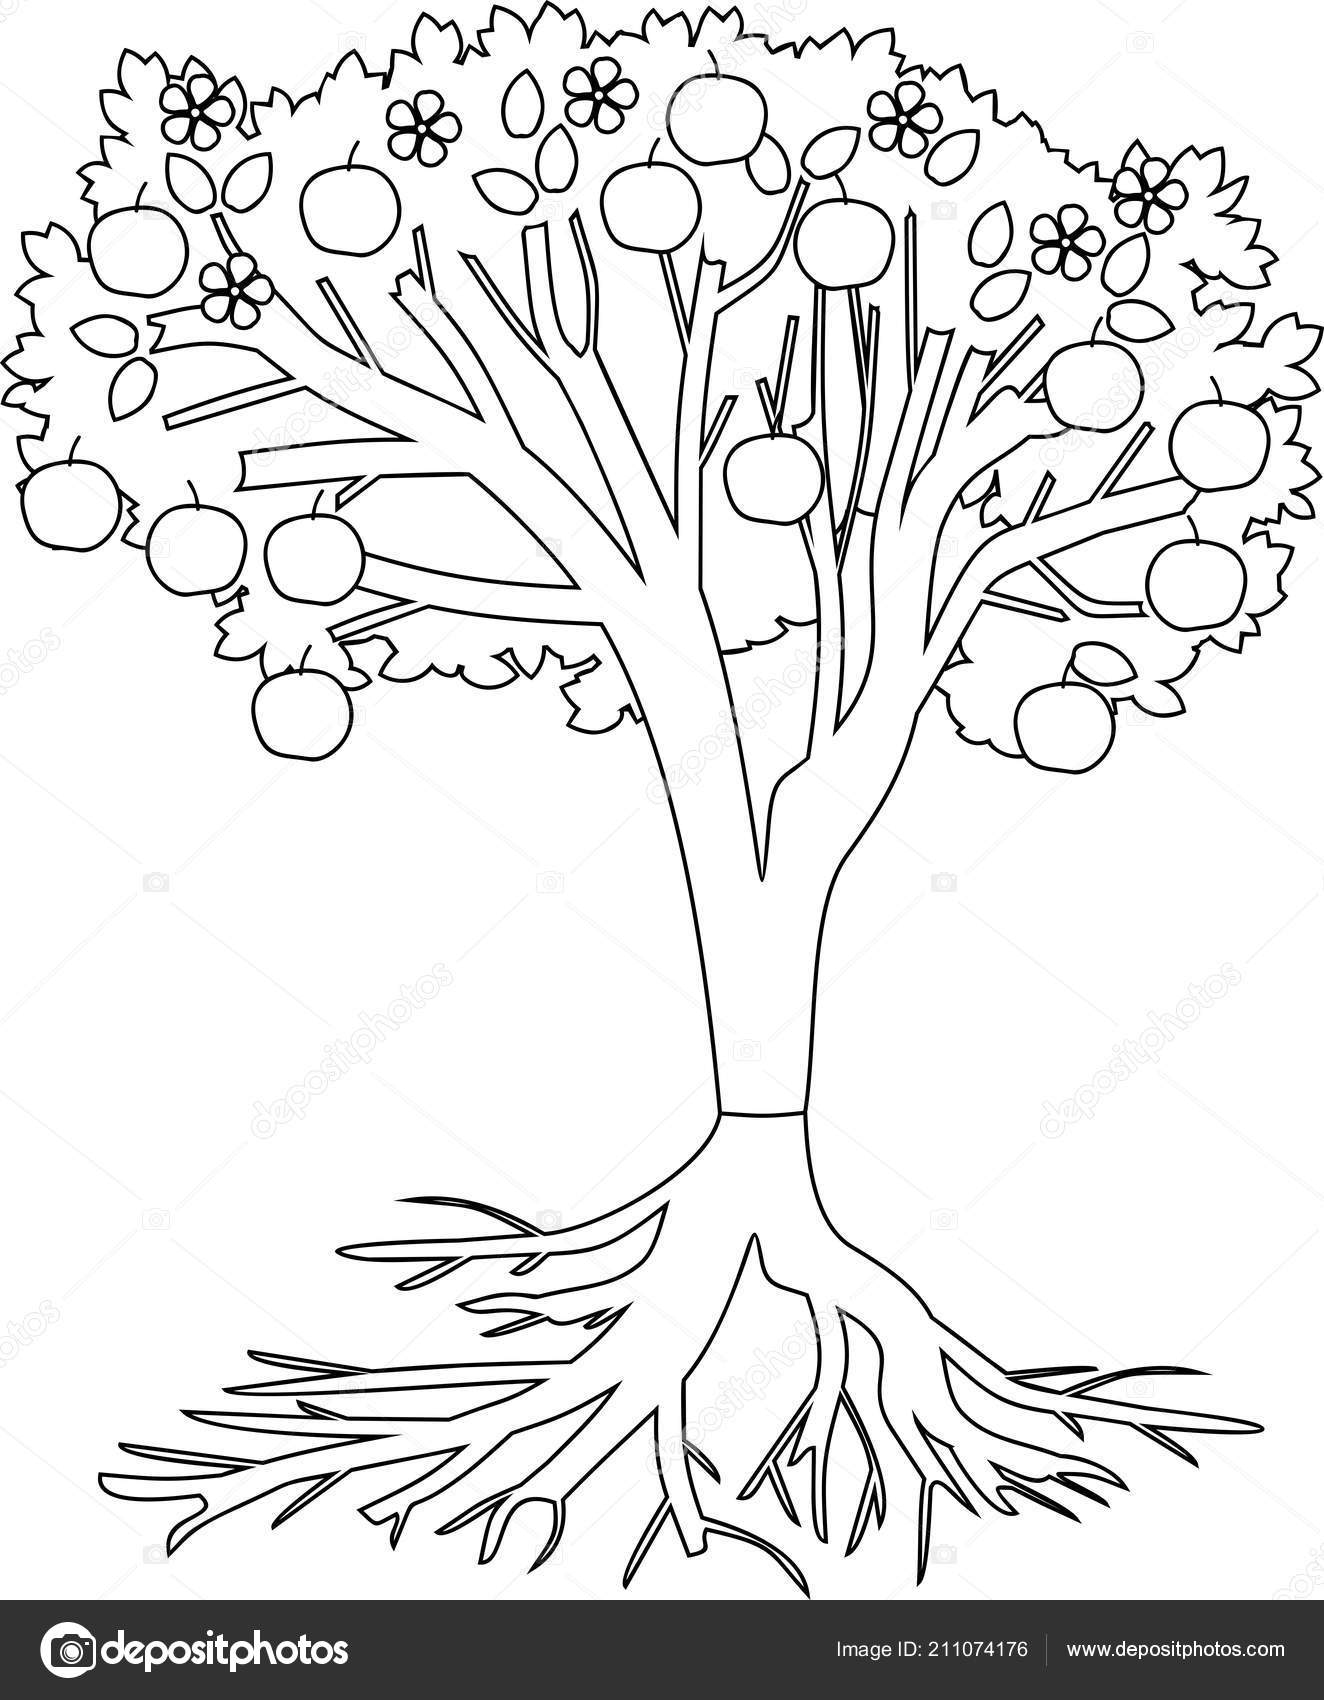 Coloring Page Apple Tree Root System Fruits Stock Vector C Mariaflaya 211074176